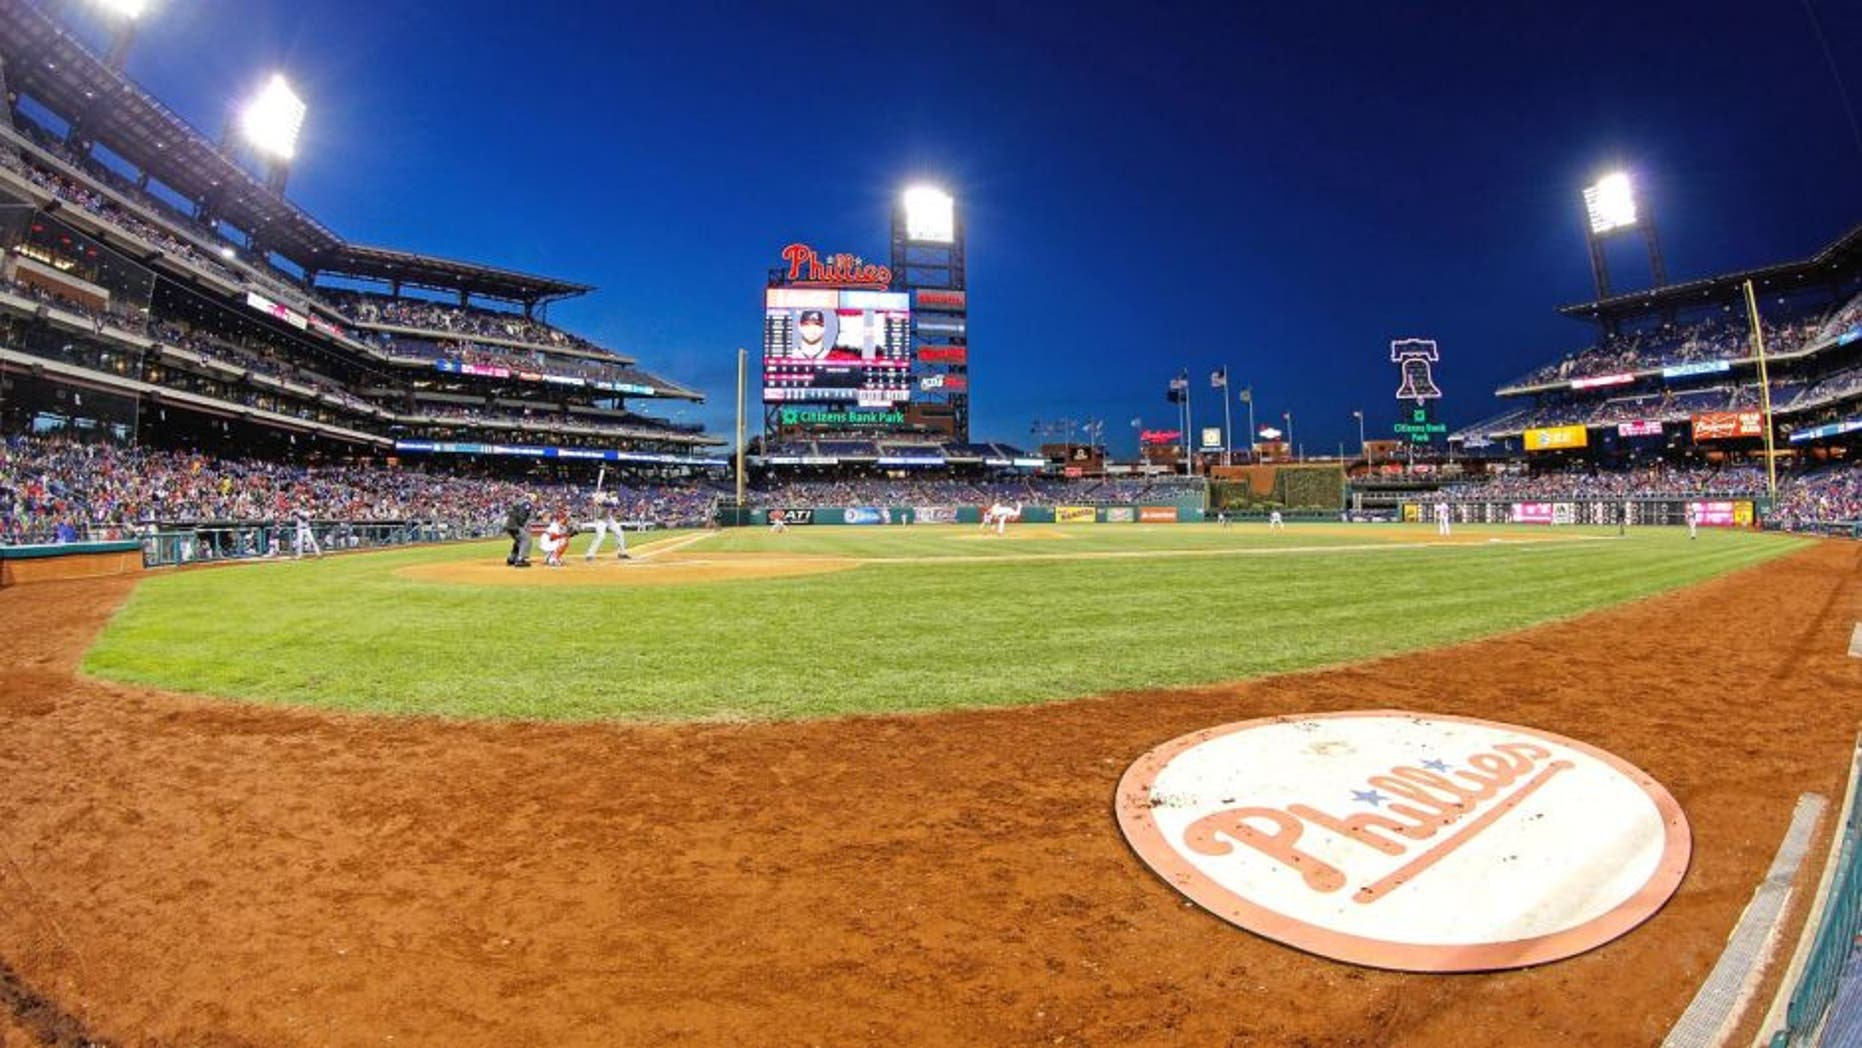 PHILADELPHIA, PA - APRIL 16: (EDITORS NOTE: This image was taken with a fisheye lens) A general view of Citizens Bank Park from field level during the game between the Atlanta Braves and the Philadelphia Phillies on April 16, 2014 in Philadelphia, Pennsylvania. All uniformed team members are wearing jersey number 42 in honor of Jackie Robinson Day. The Braves won 1-0. (Photo by Brian Garfinkel/Getty Images)